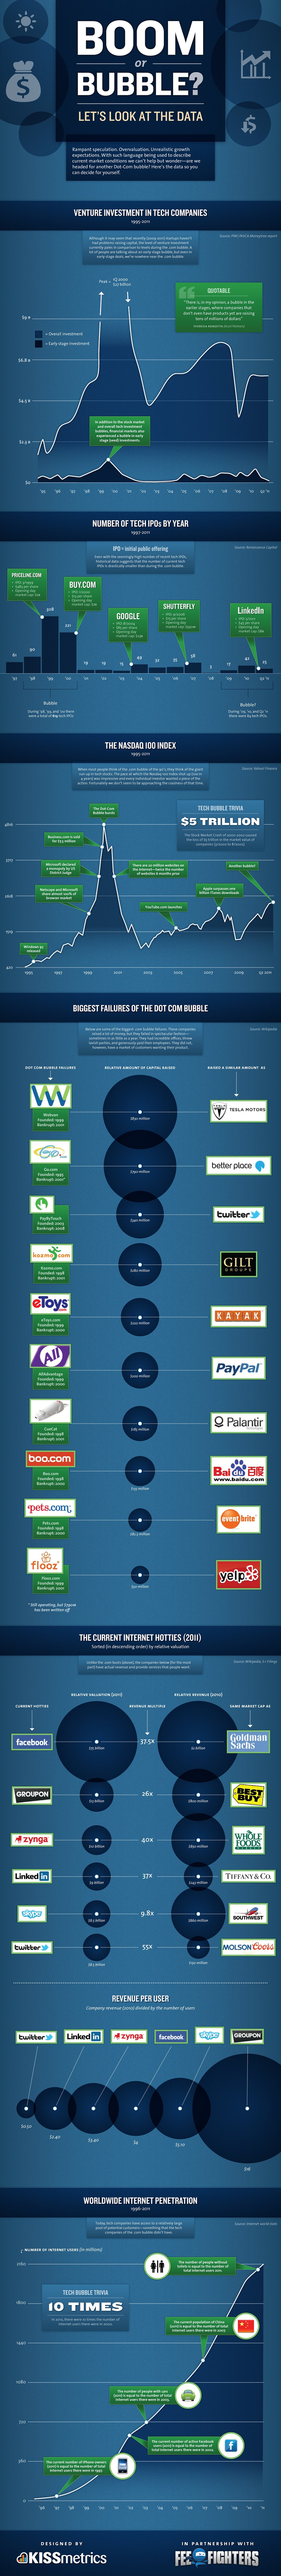 Tech Boom or Bubble? Infographic